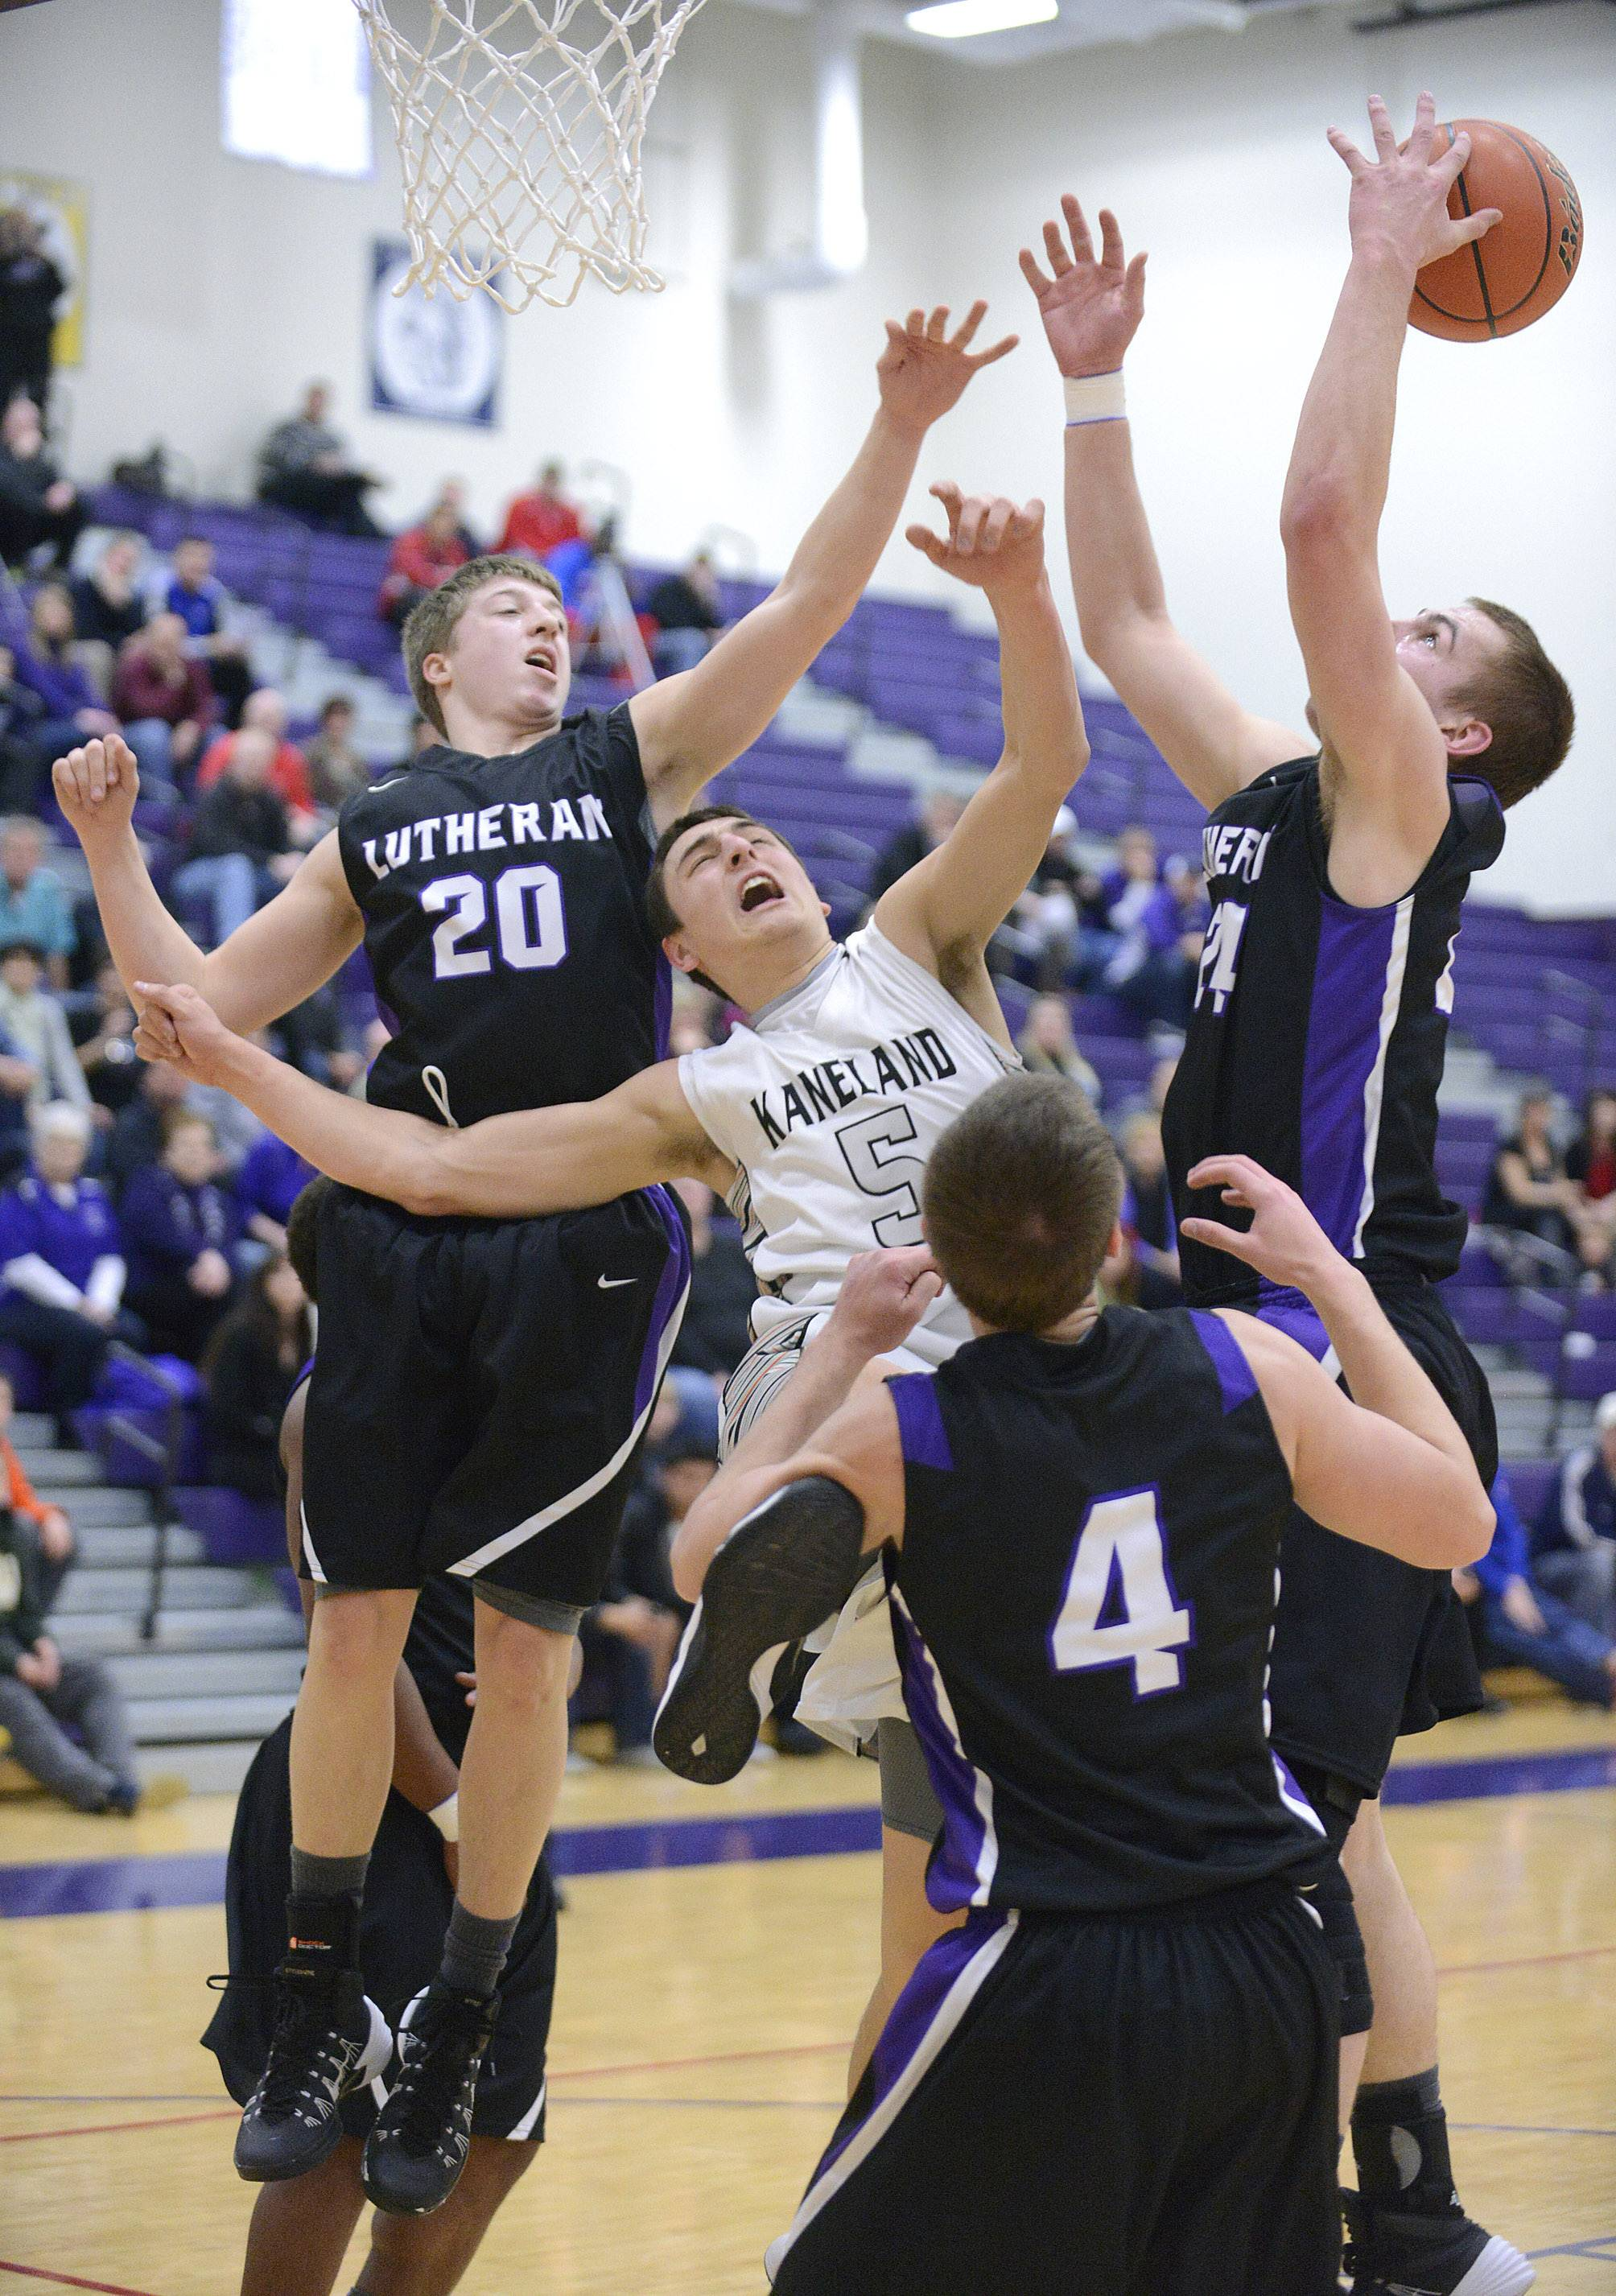 Kaneland's John Pruett is denied a shot by Rockford Lutheran's Joseph Kellen sending the ball over to Rockford Lutheran's Nate Wieting in the first quarter of the Class 3A sectional game at Hampshire HIgh School on Tuesday, March 11.